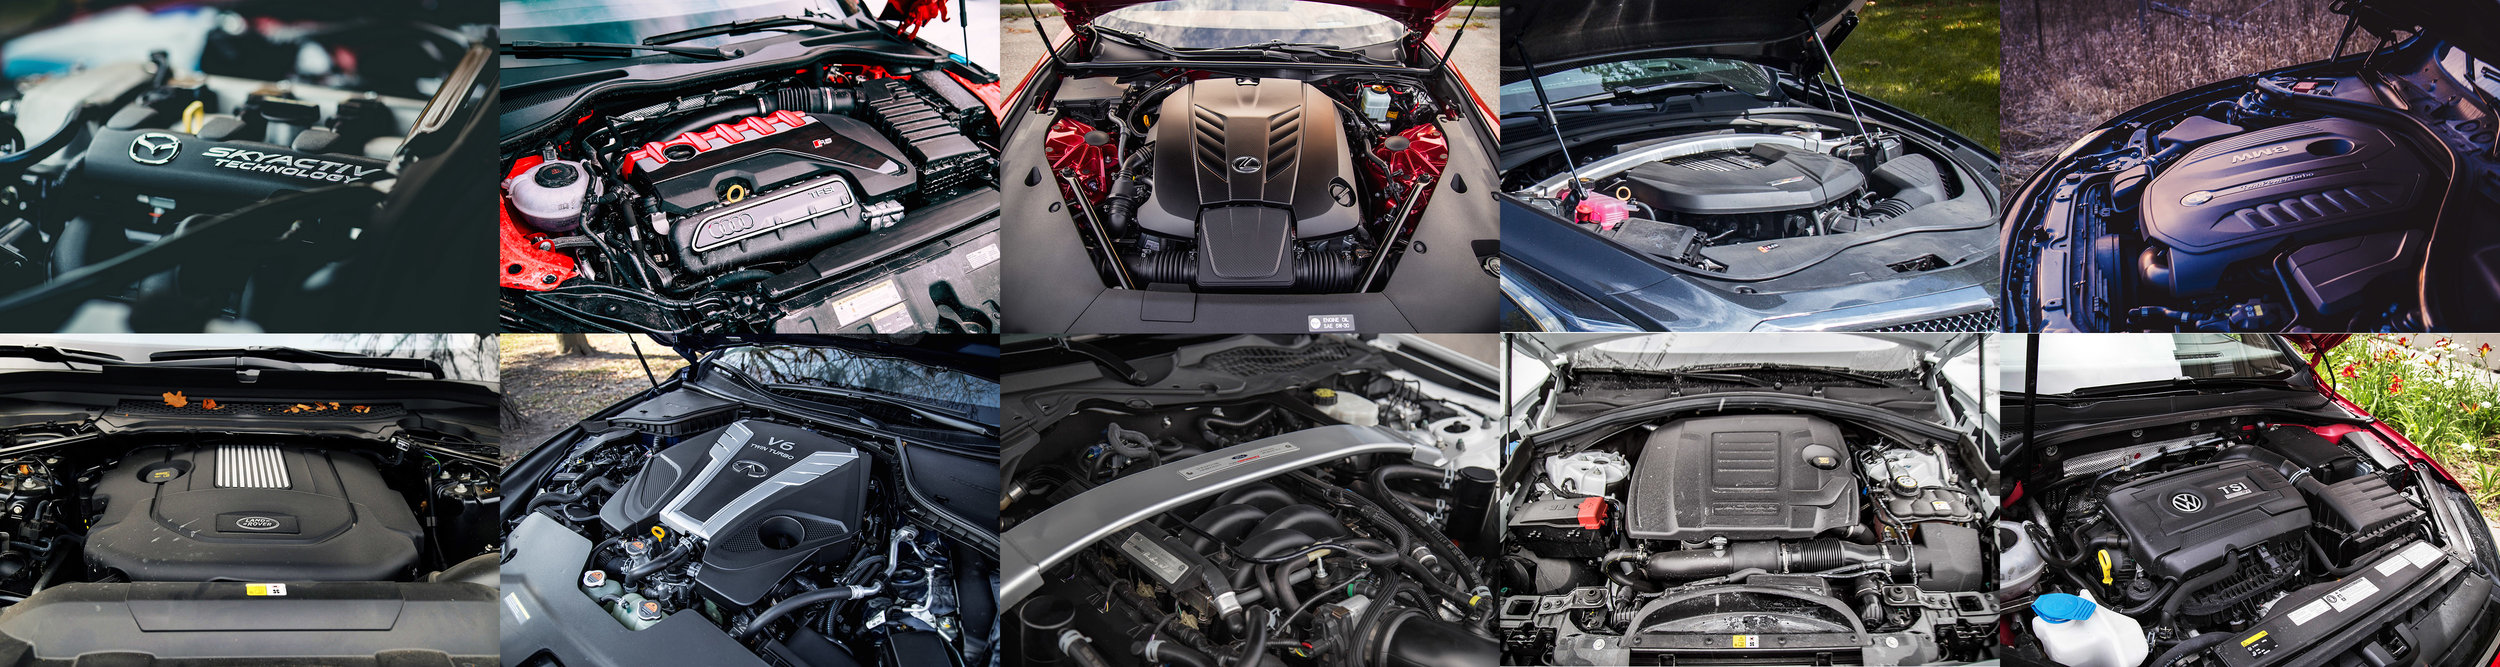 Top 10 Engines of 2017 - Words/Photography: Canadian Auto ReviewRead article